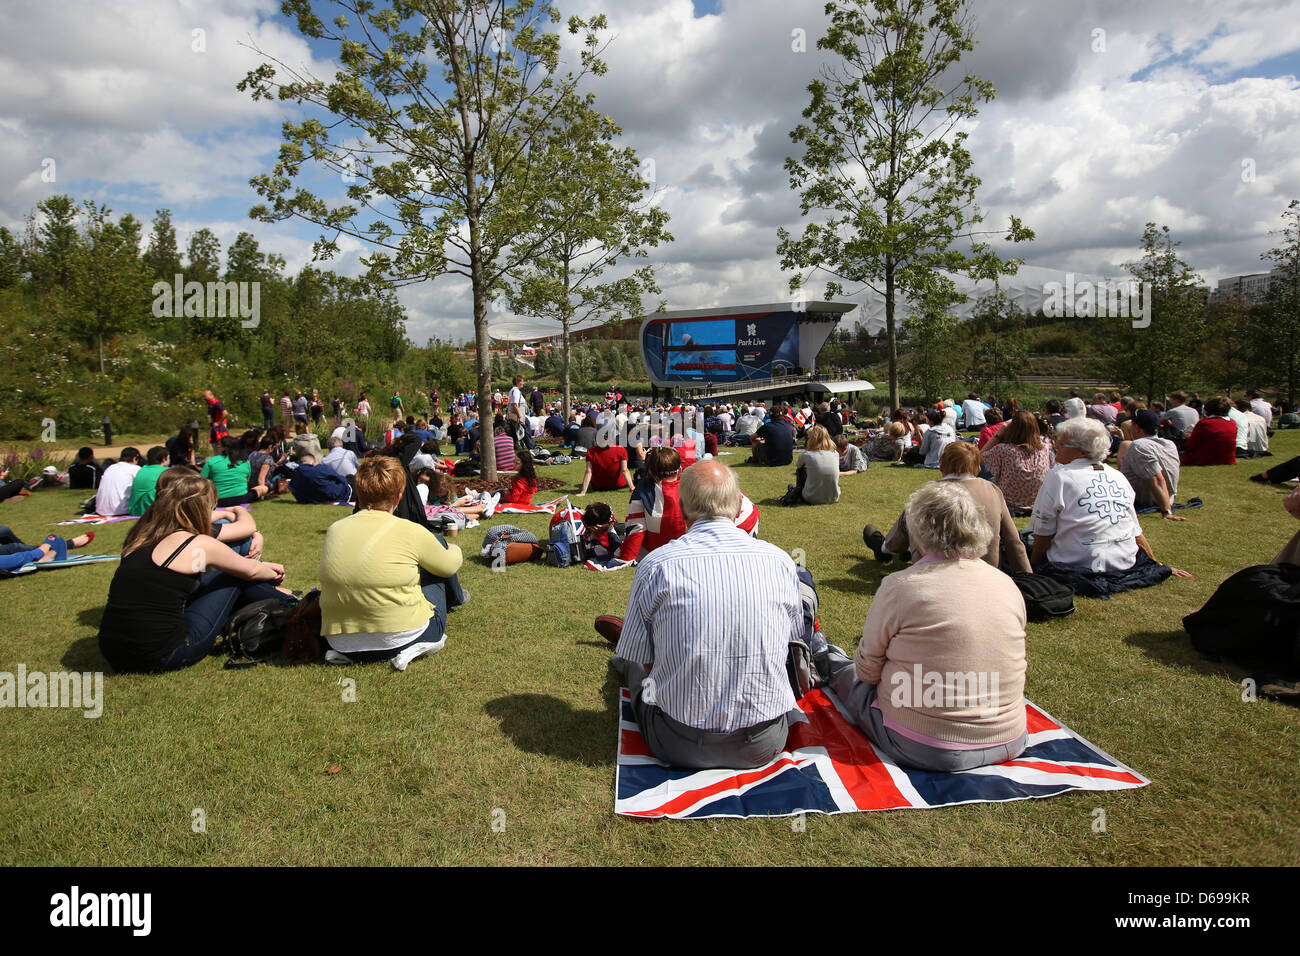 People Sit In The Olympic Park And Watch Swimming Event On A Huge TV Screen Seventh Day Of London 2012 Games Britain